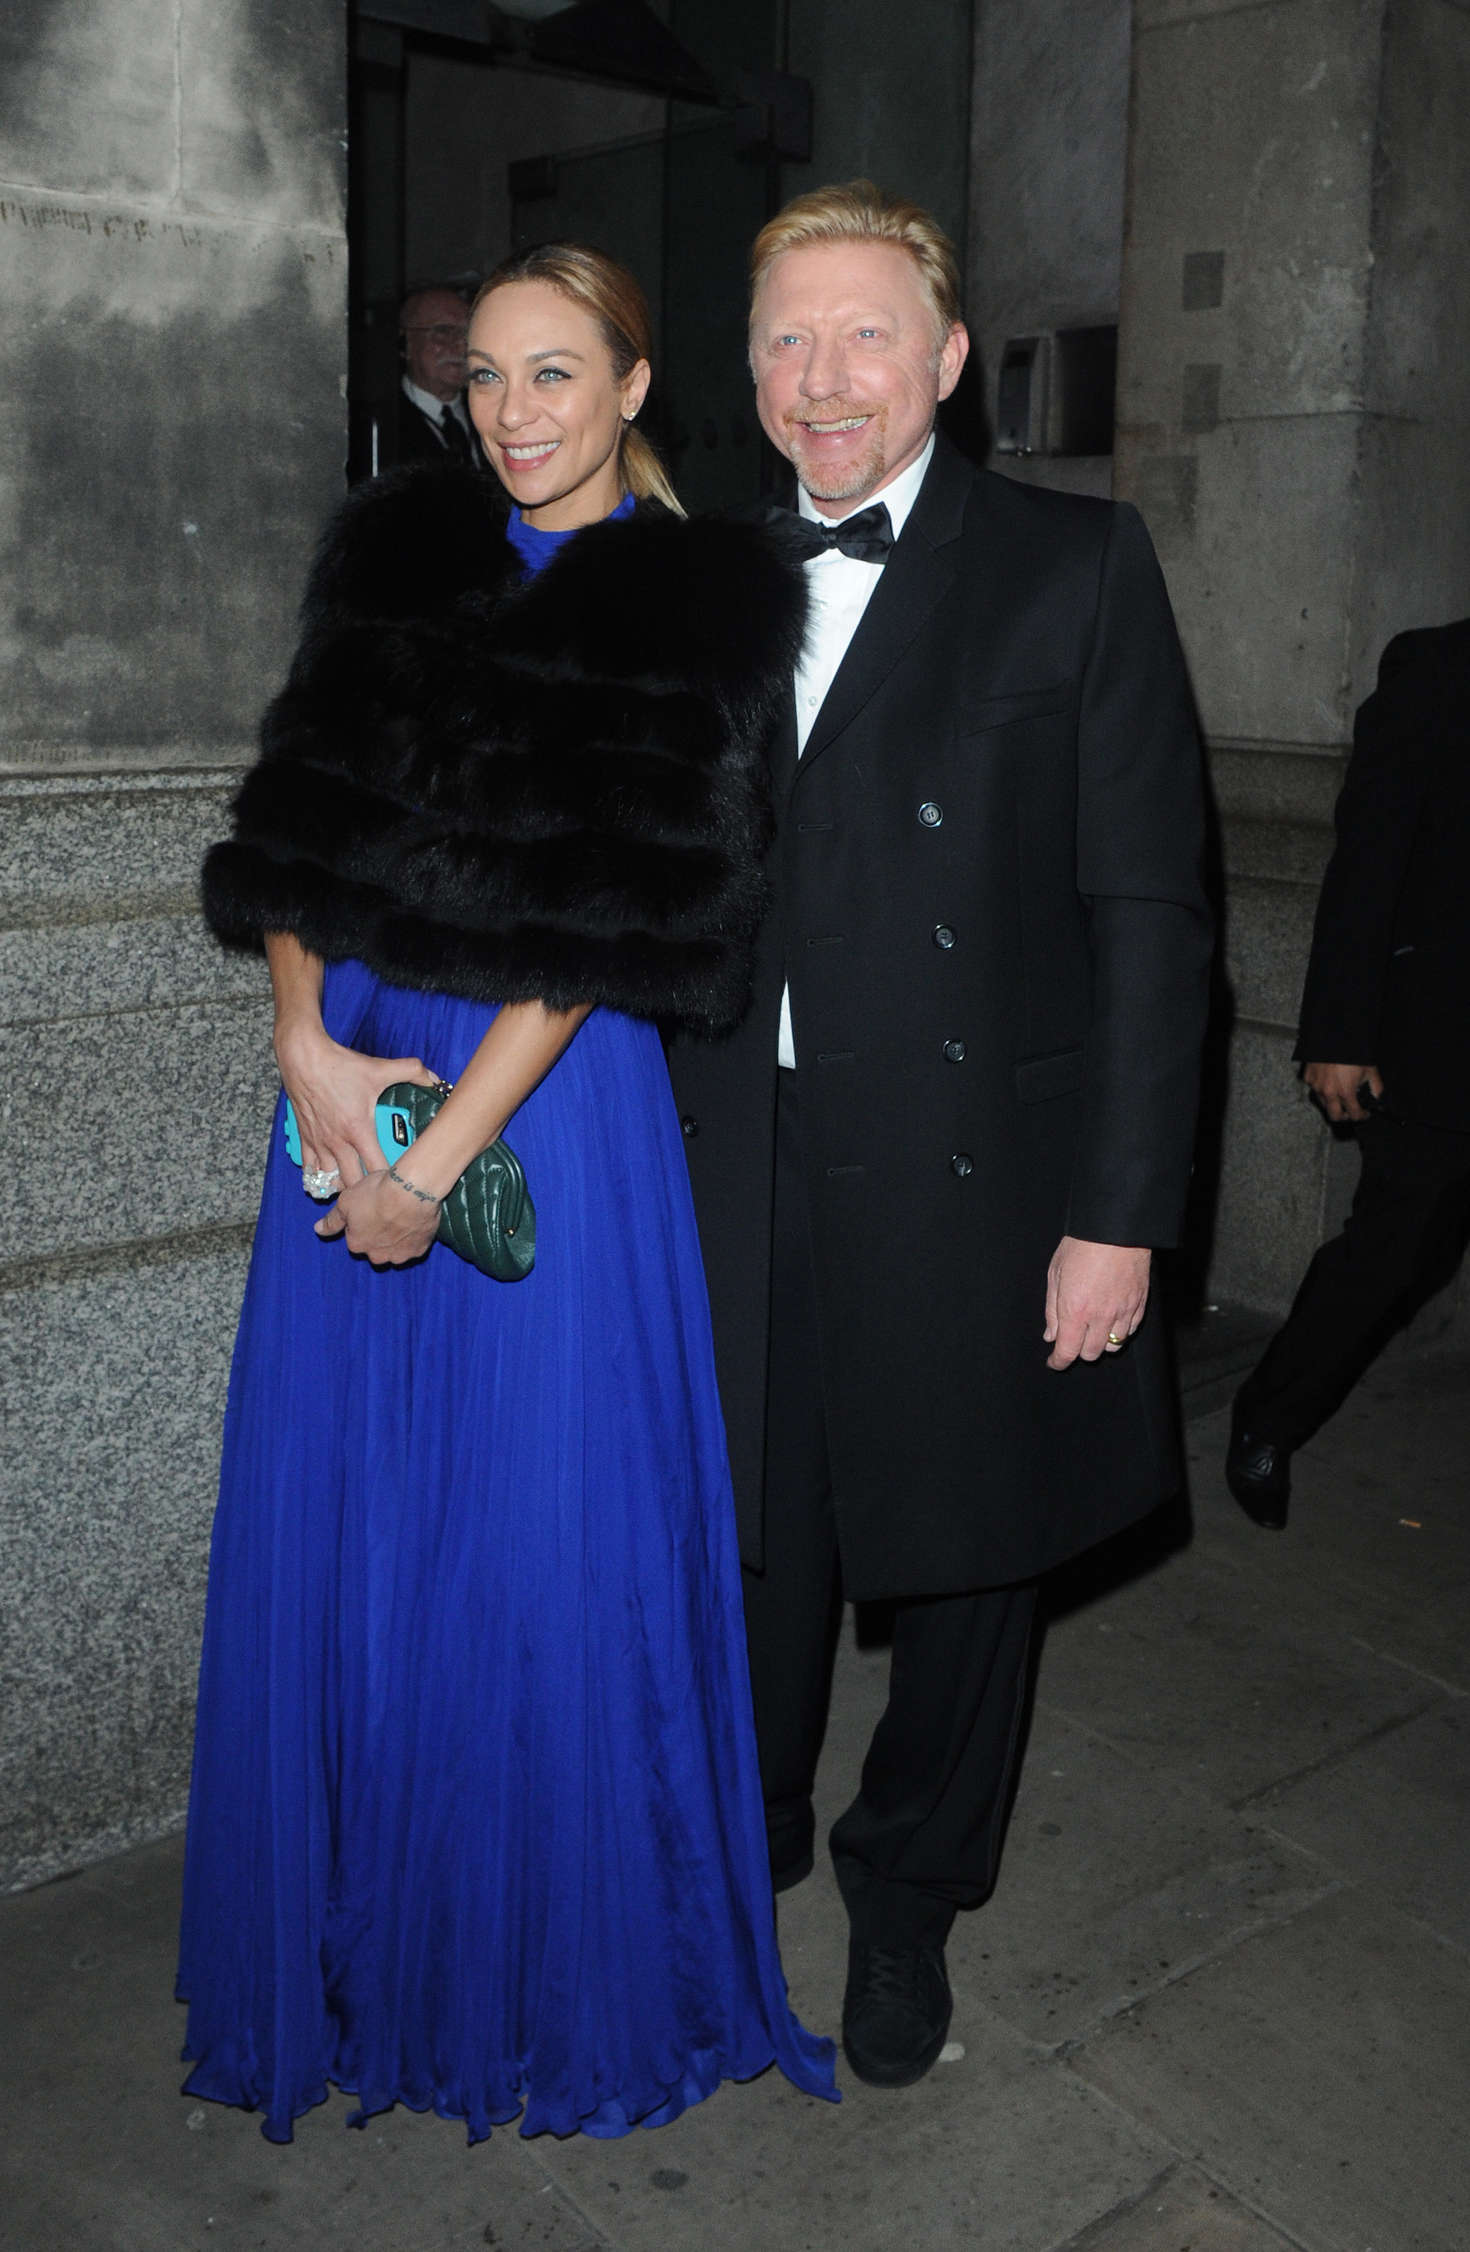 Lilly Becker Leaving the Princes Trust Gala Dinner in London